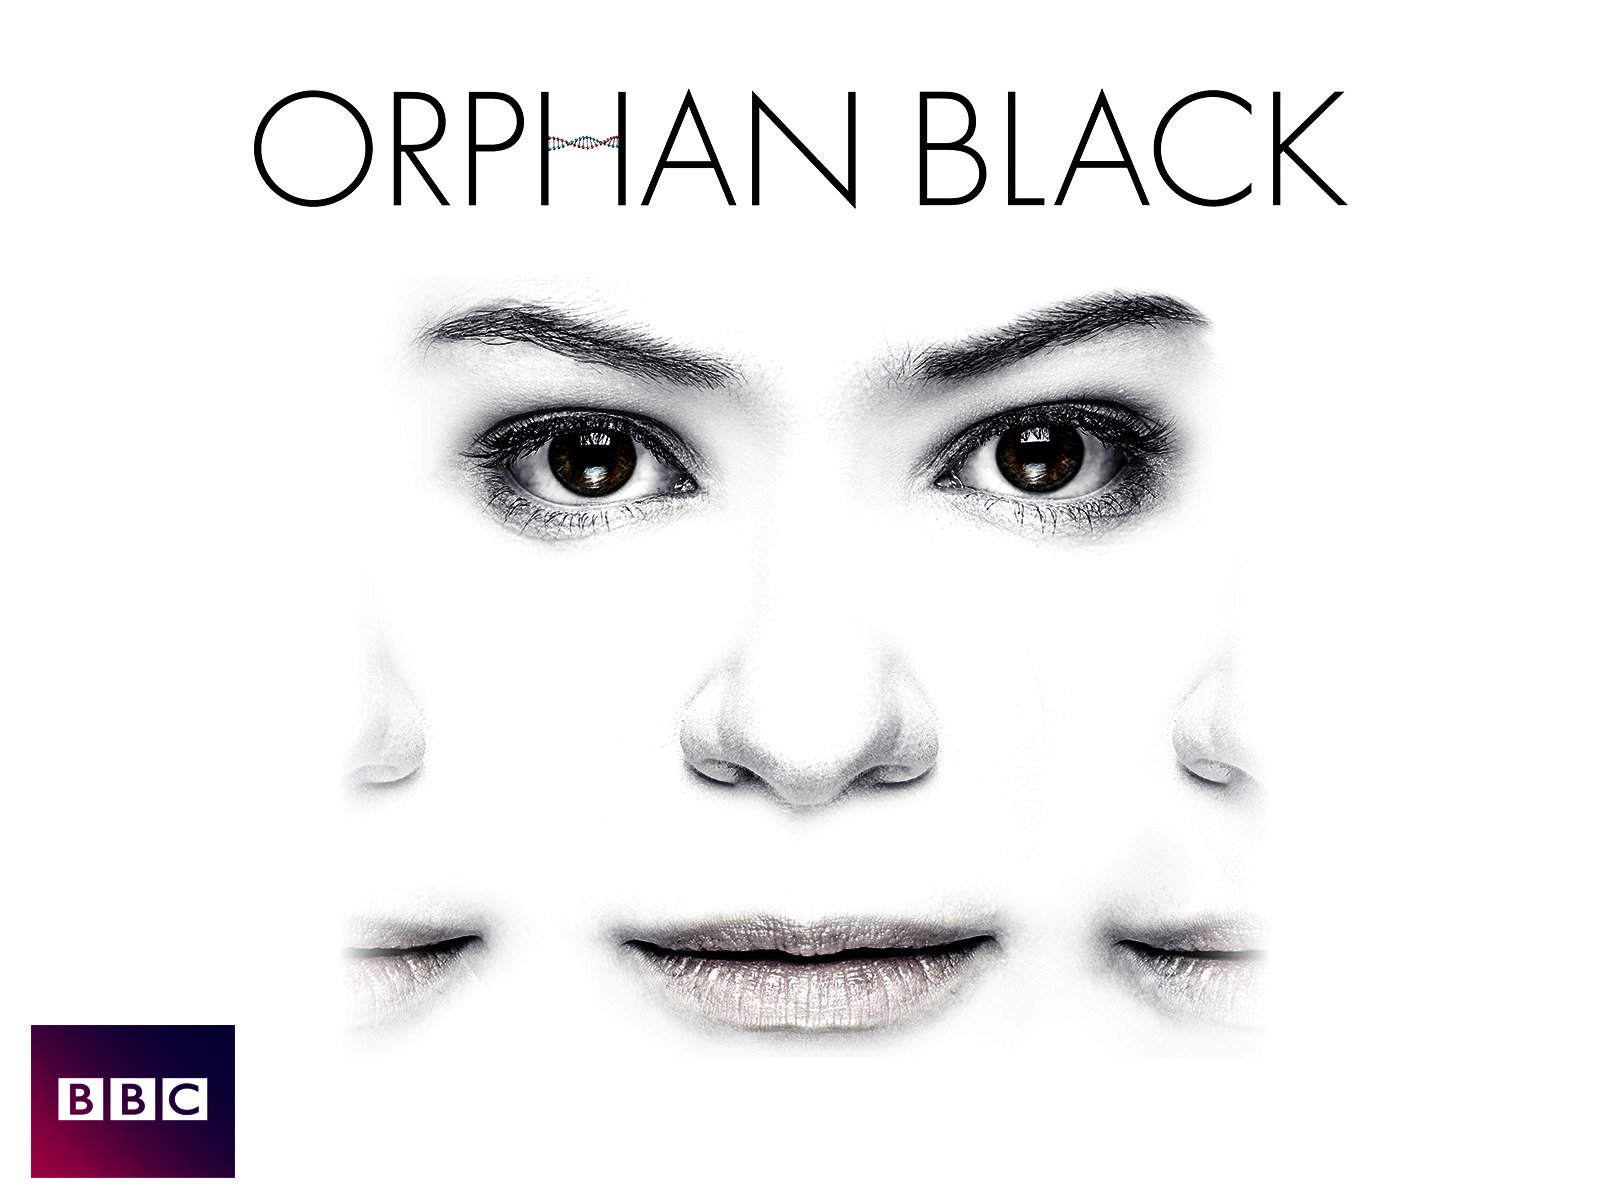 Orphan black t shirt uk - Orphan Black Season 1 Watch Online Now With Amazon Instant Video Bbc America Amazon Co Uk